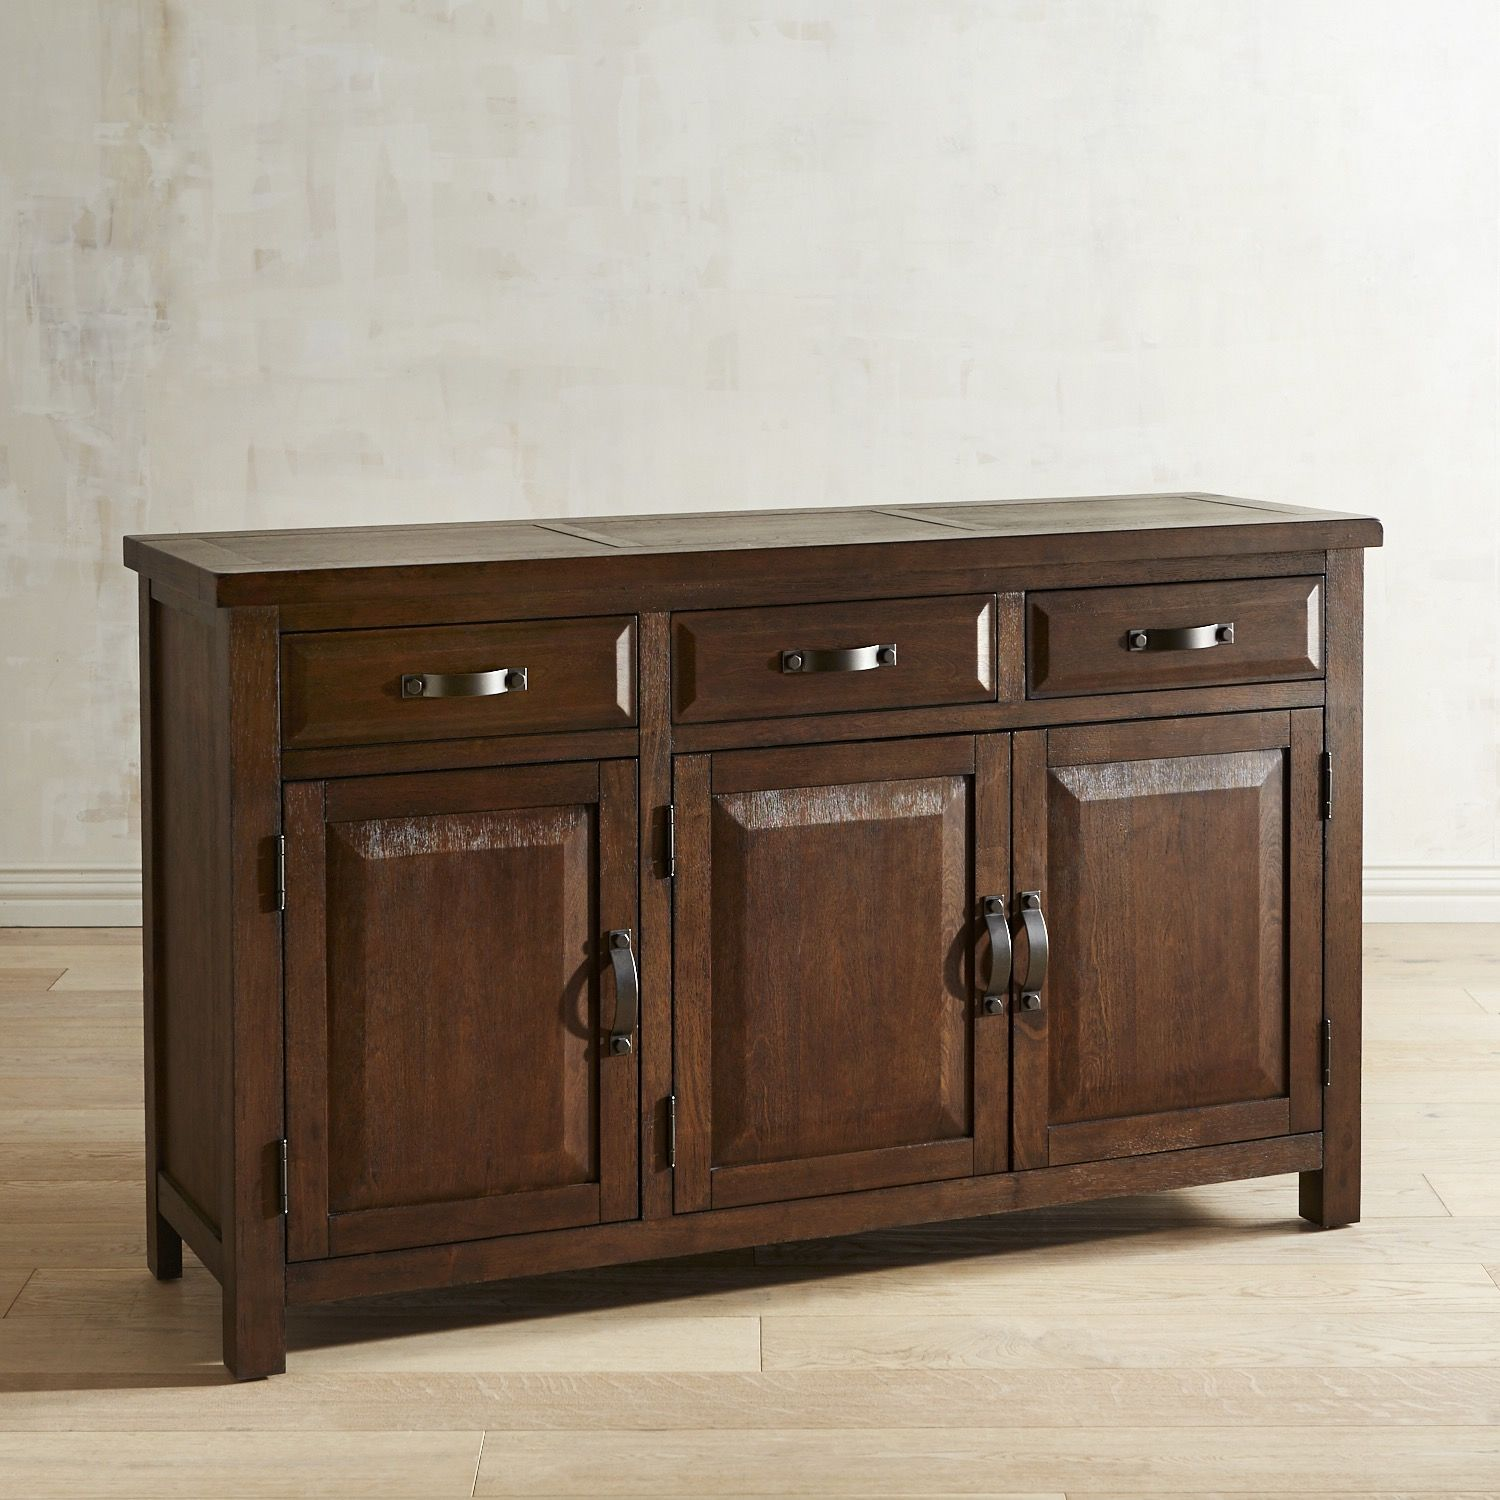 Sideboards And Buffets Furniture Interesting Buffets And Sideboards For Home